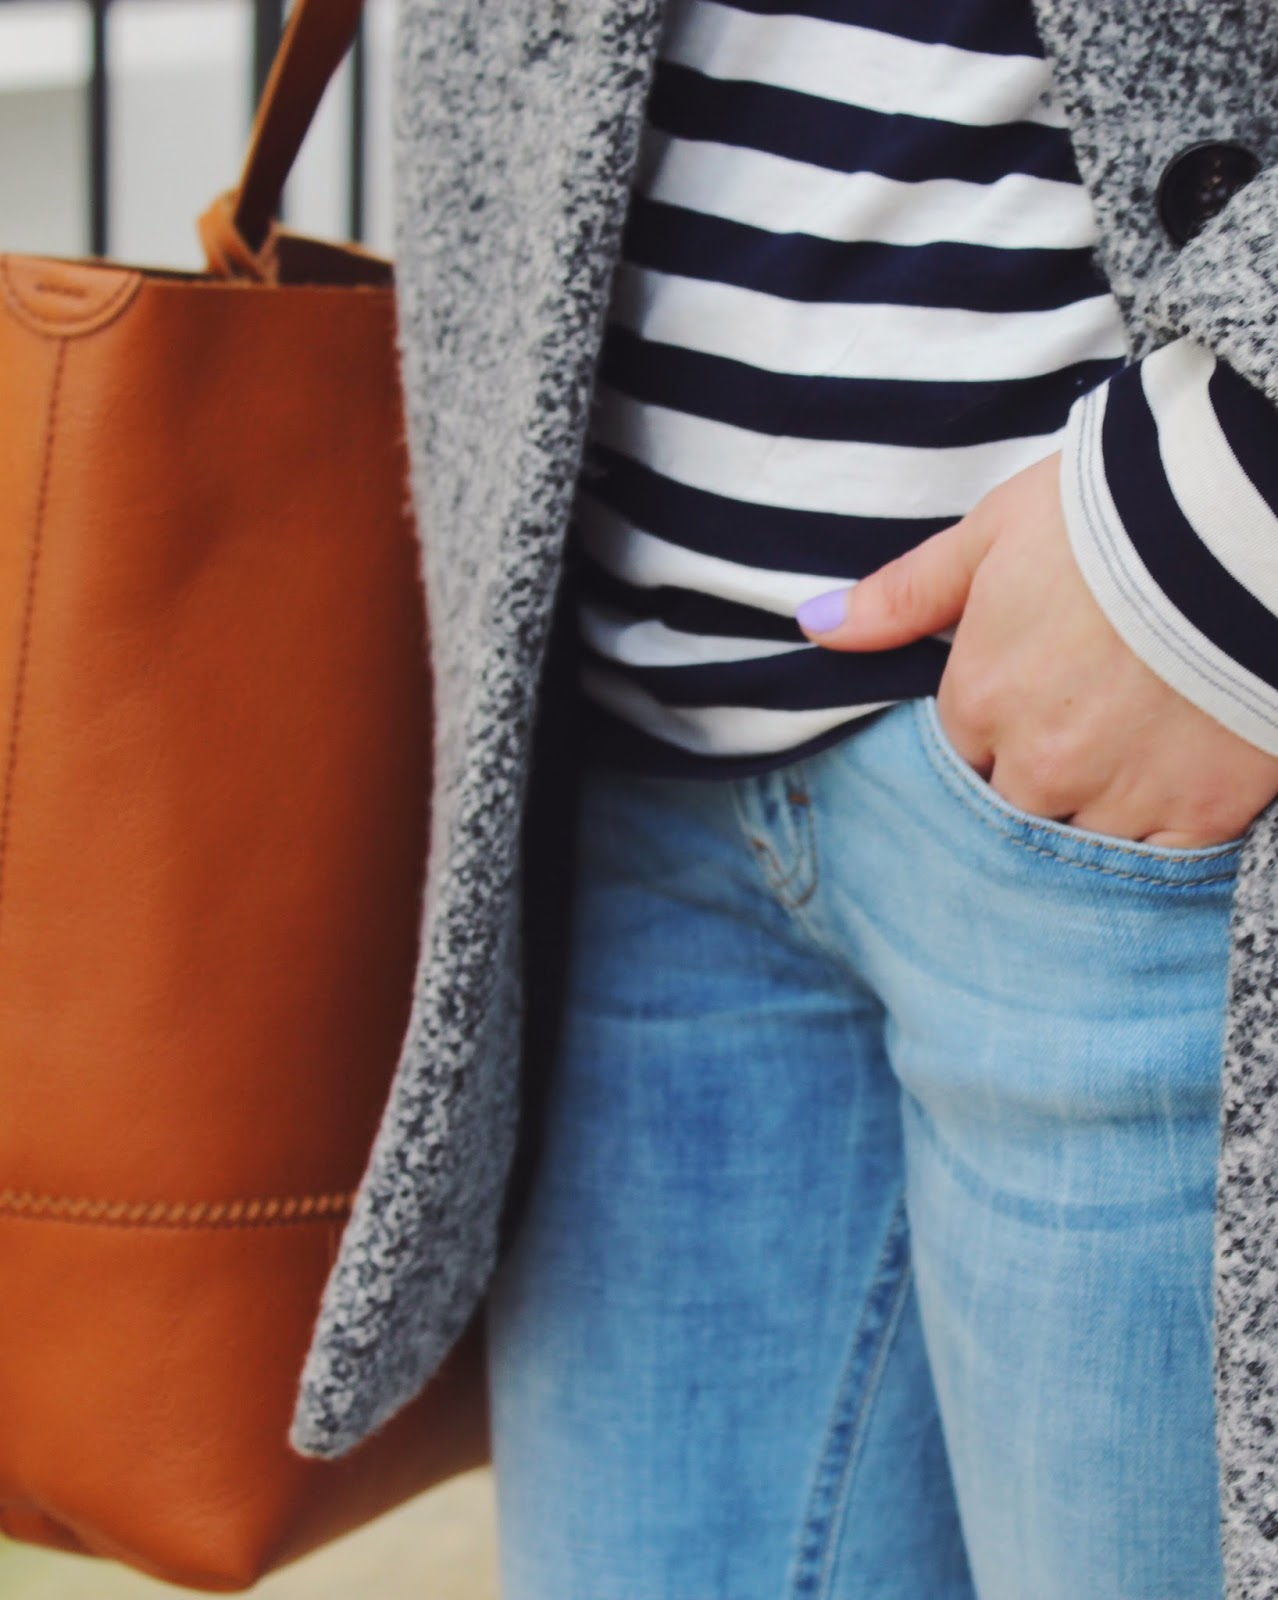 nails inc, j crew accessories, j crew bag, striped shirt, stripe shirt, boyfriend jeans, outfit of the day, fashion blogger, london blogger, german blogger